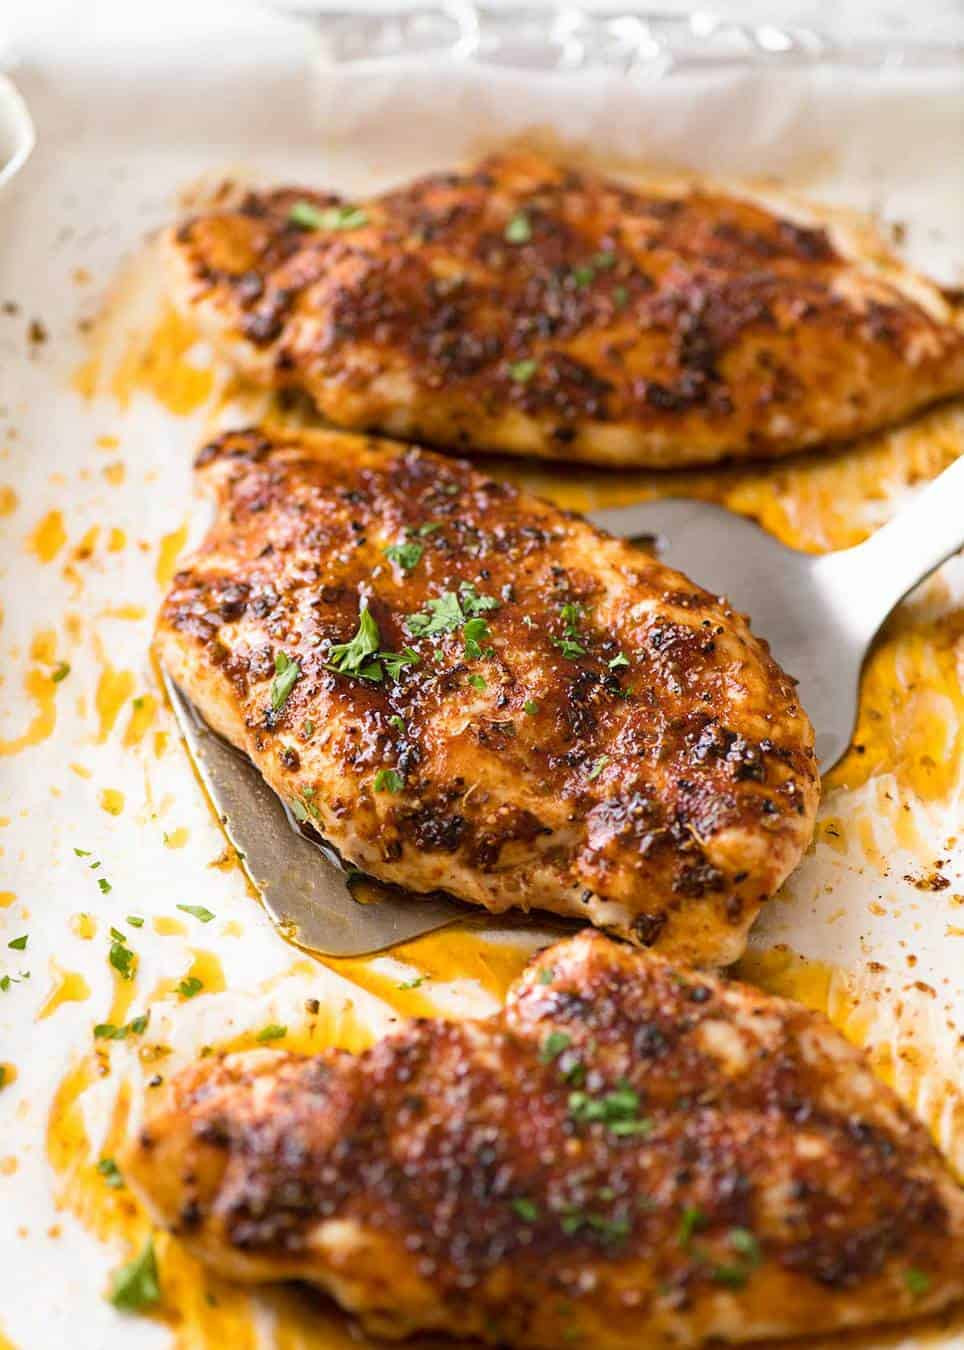 Oven Baked Chicken Breast Recipes  Oven Baked Chicken Breast